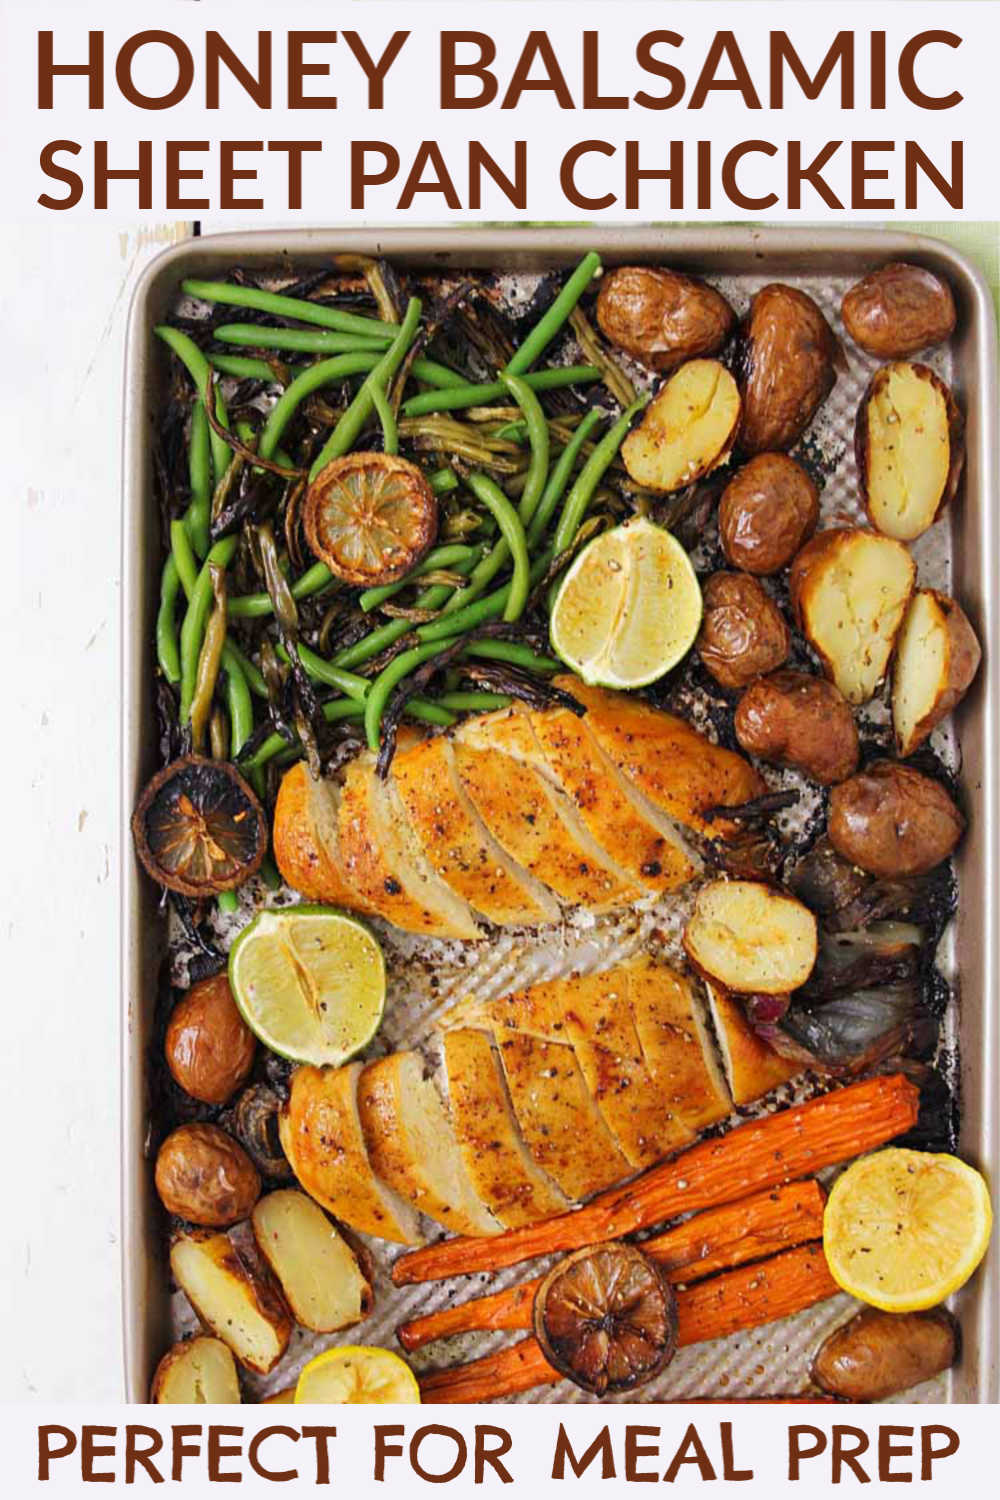 Honey Balsamic Sheet Pan Chicken with Veggies is a Meal Prepper's dream dinner! Great to use leftover vegetables from other meals, this is virtually dump and go. Serve a super healthy and delicious dinner or prepare for the week's lunches all at once! #SheetPan #Balsamic #MealPrep #DumpAndGo